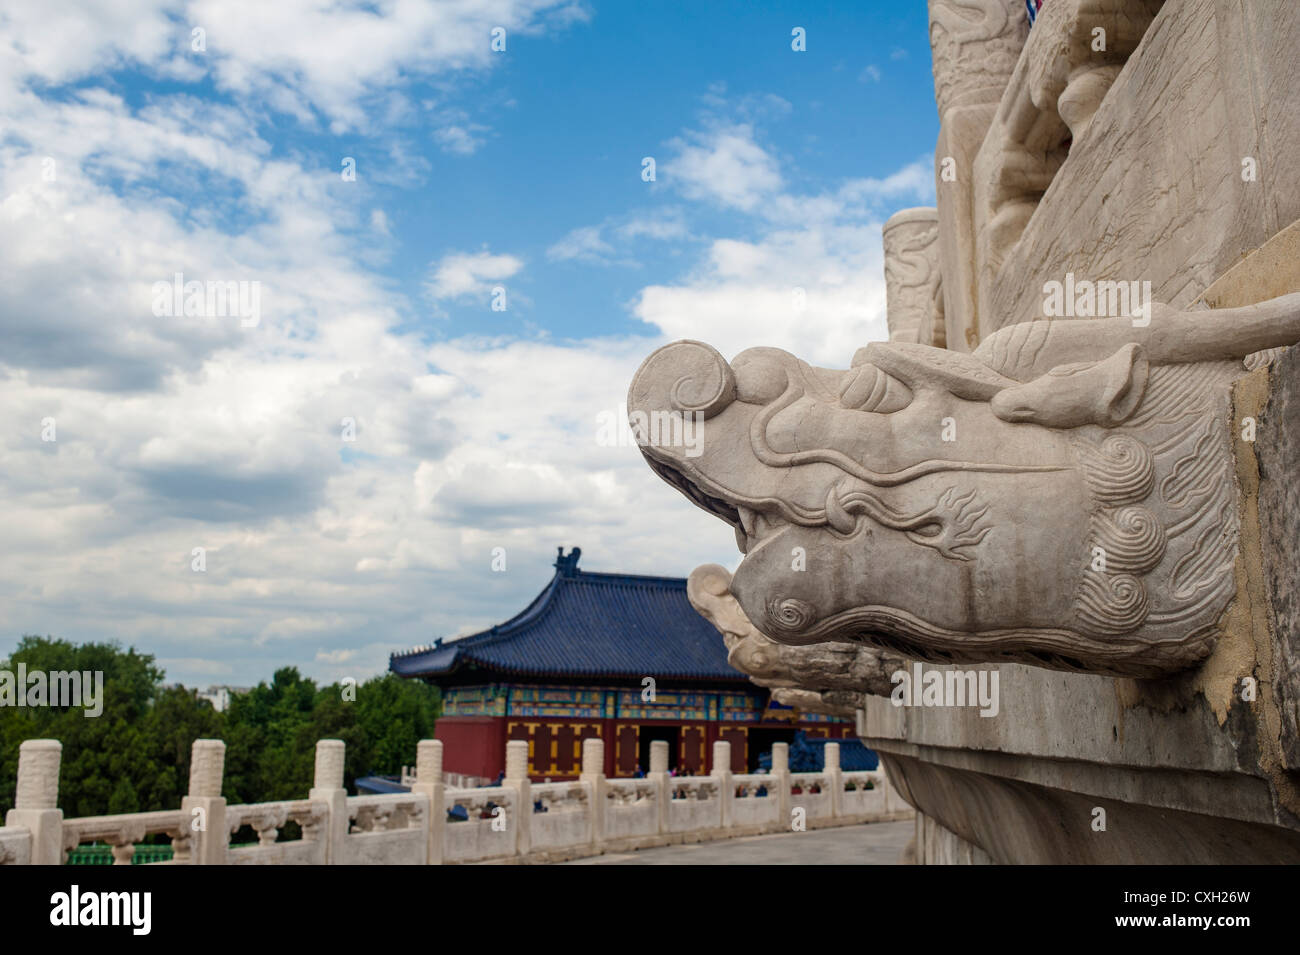 Dragon head-like rain outlet in Temple of Heaven - Stock Image